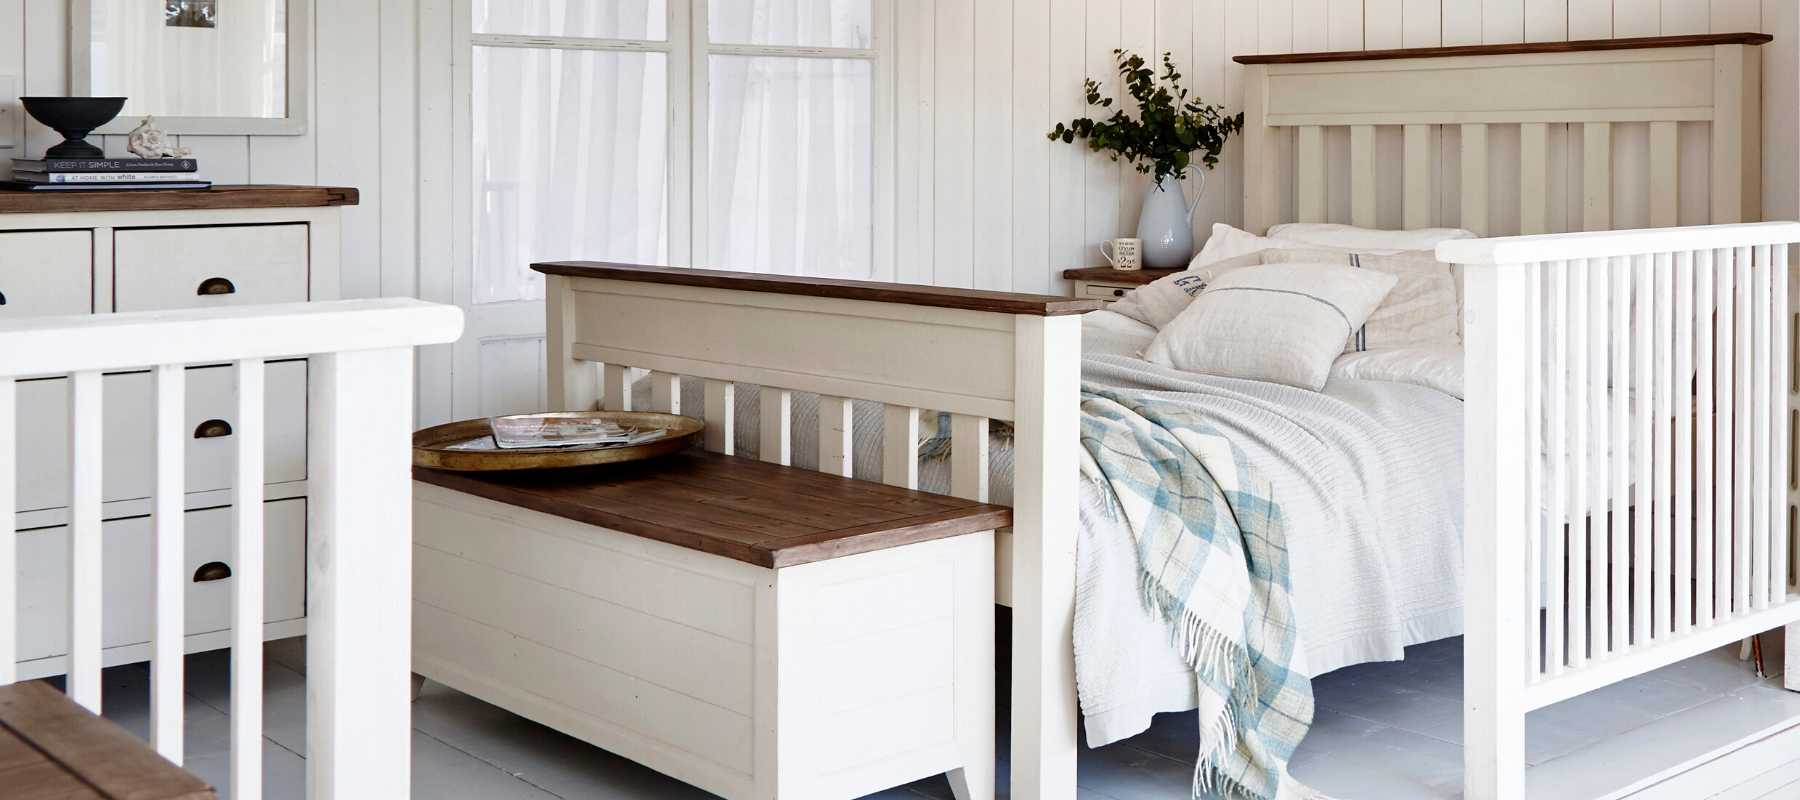 White blanket box and white wooden bed